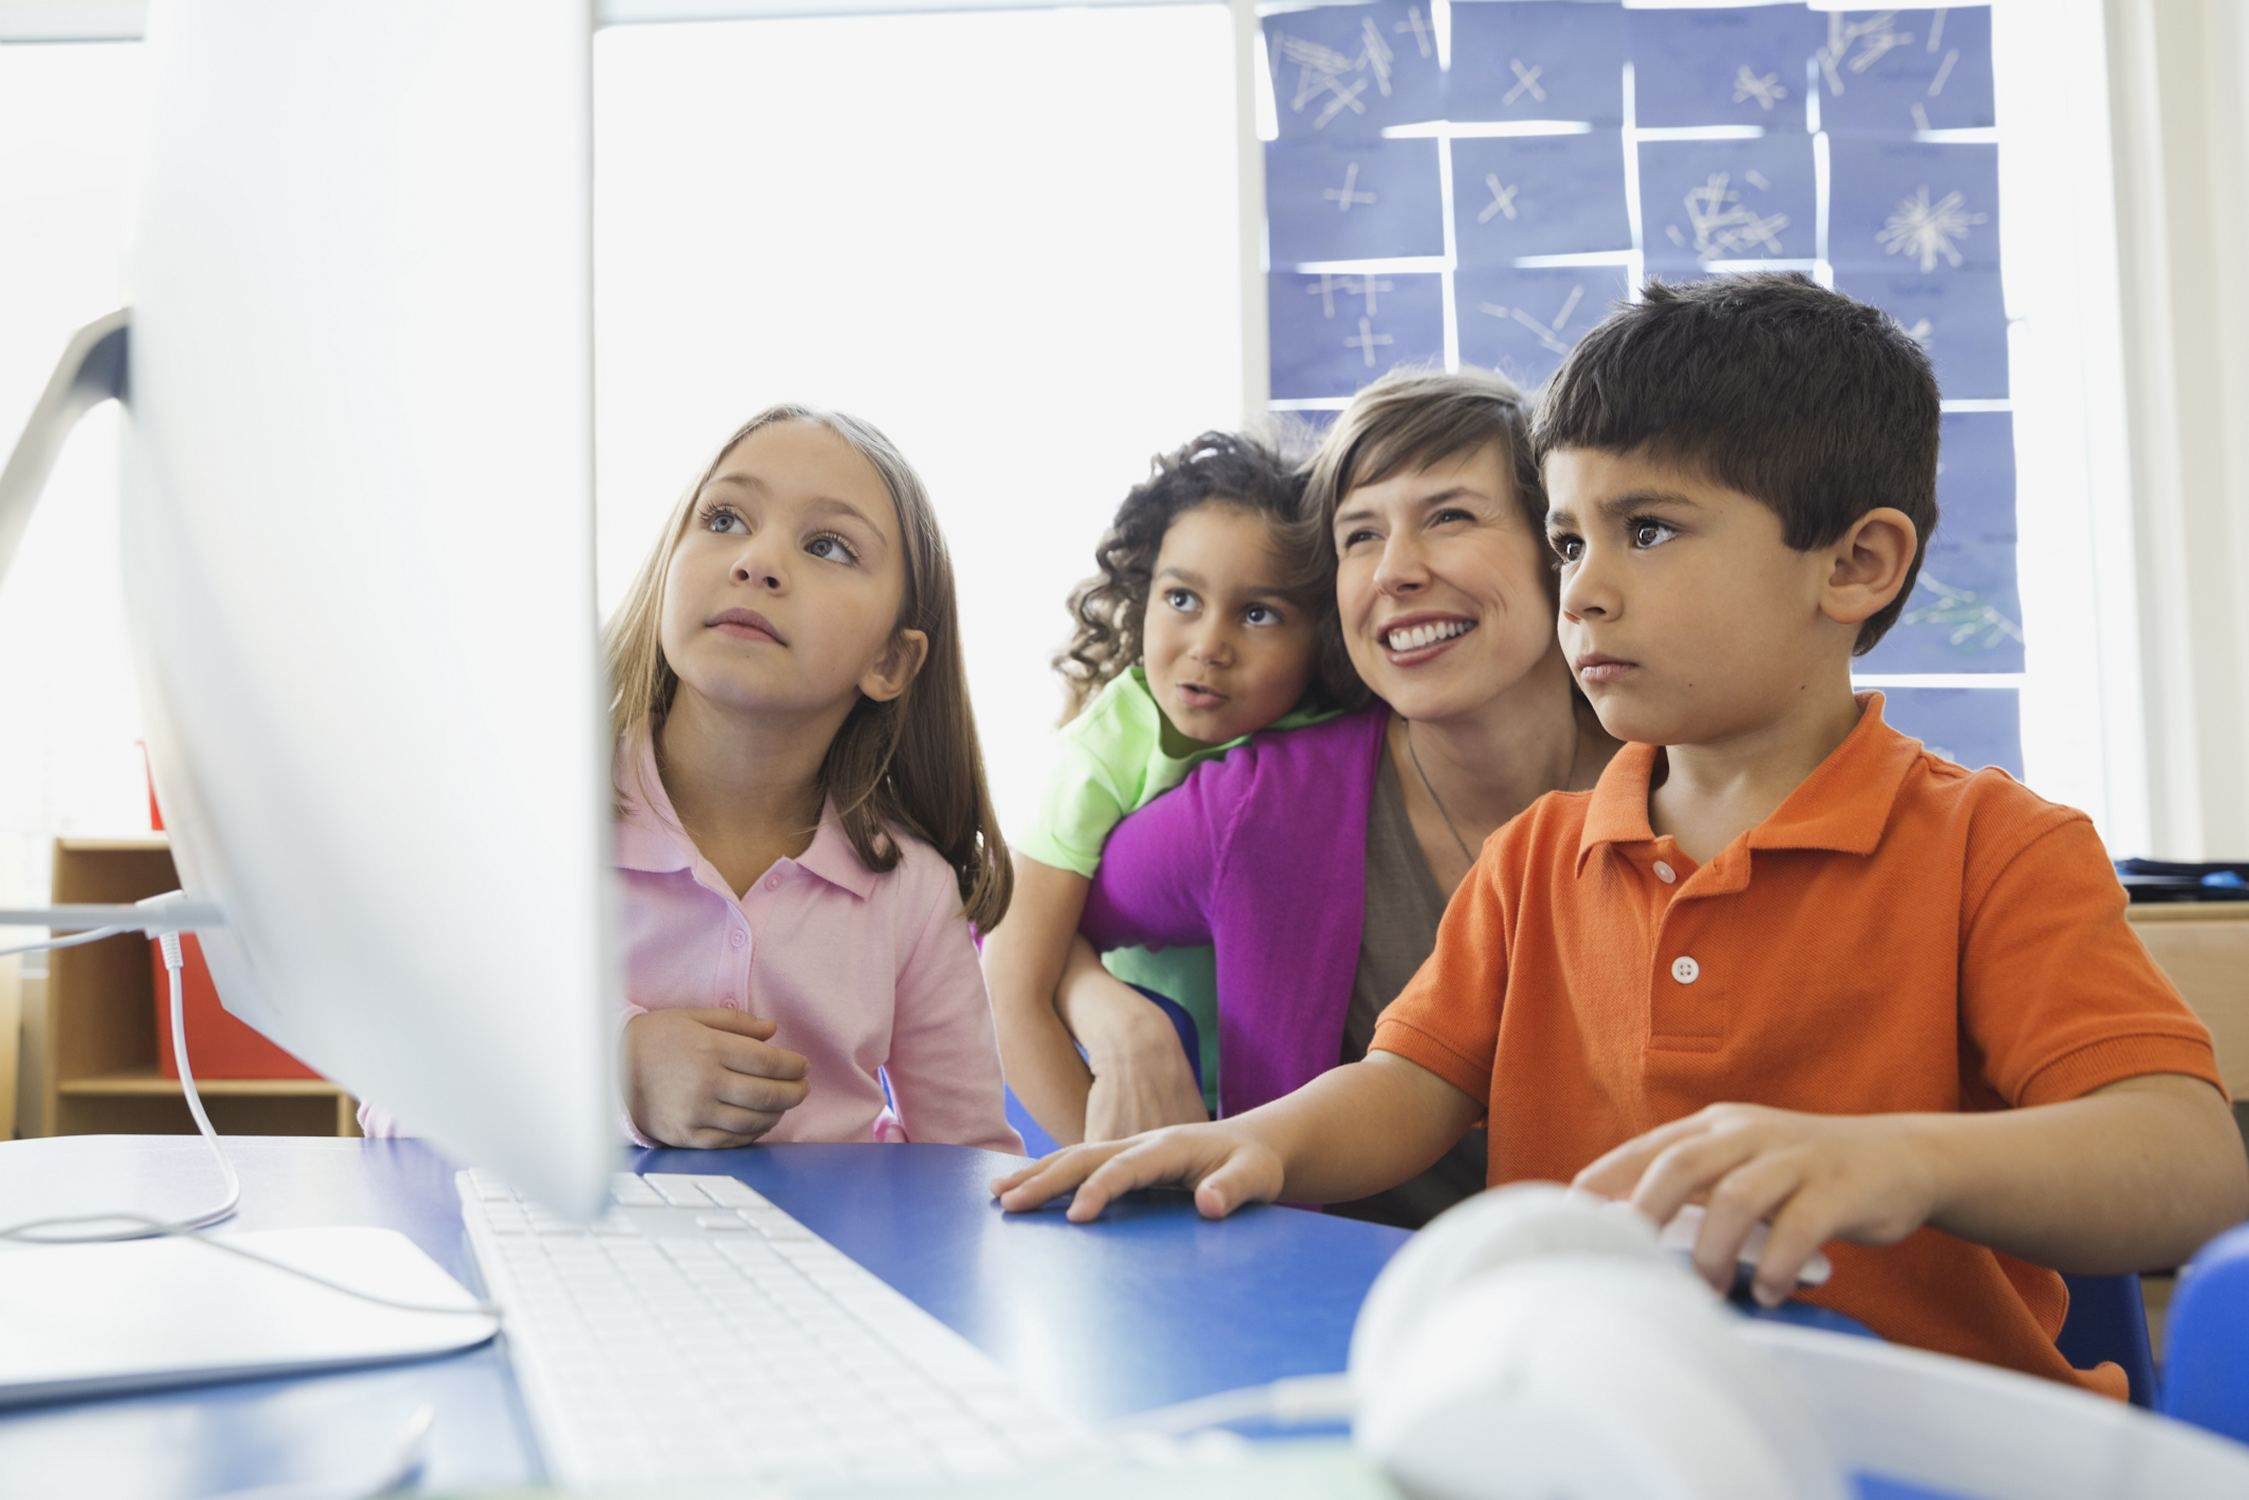 Top Virtual Field Trip Ideas For Kids Of All Ages